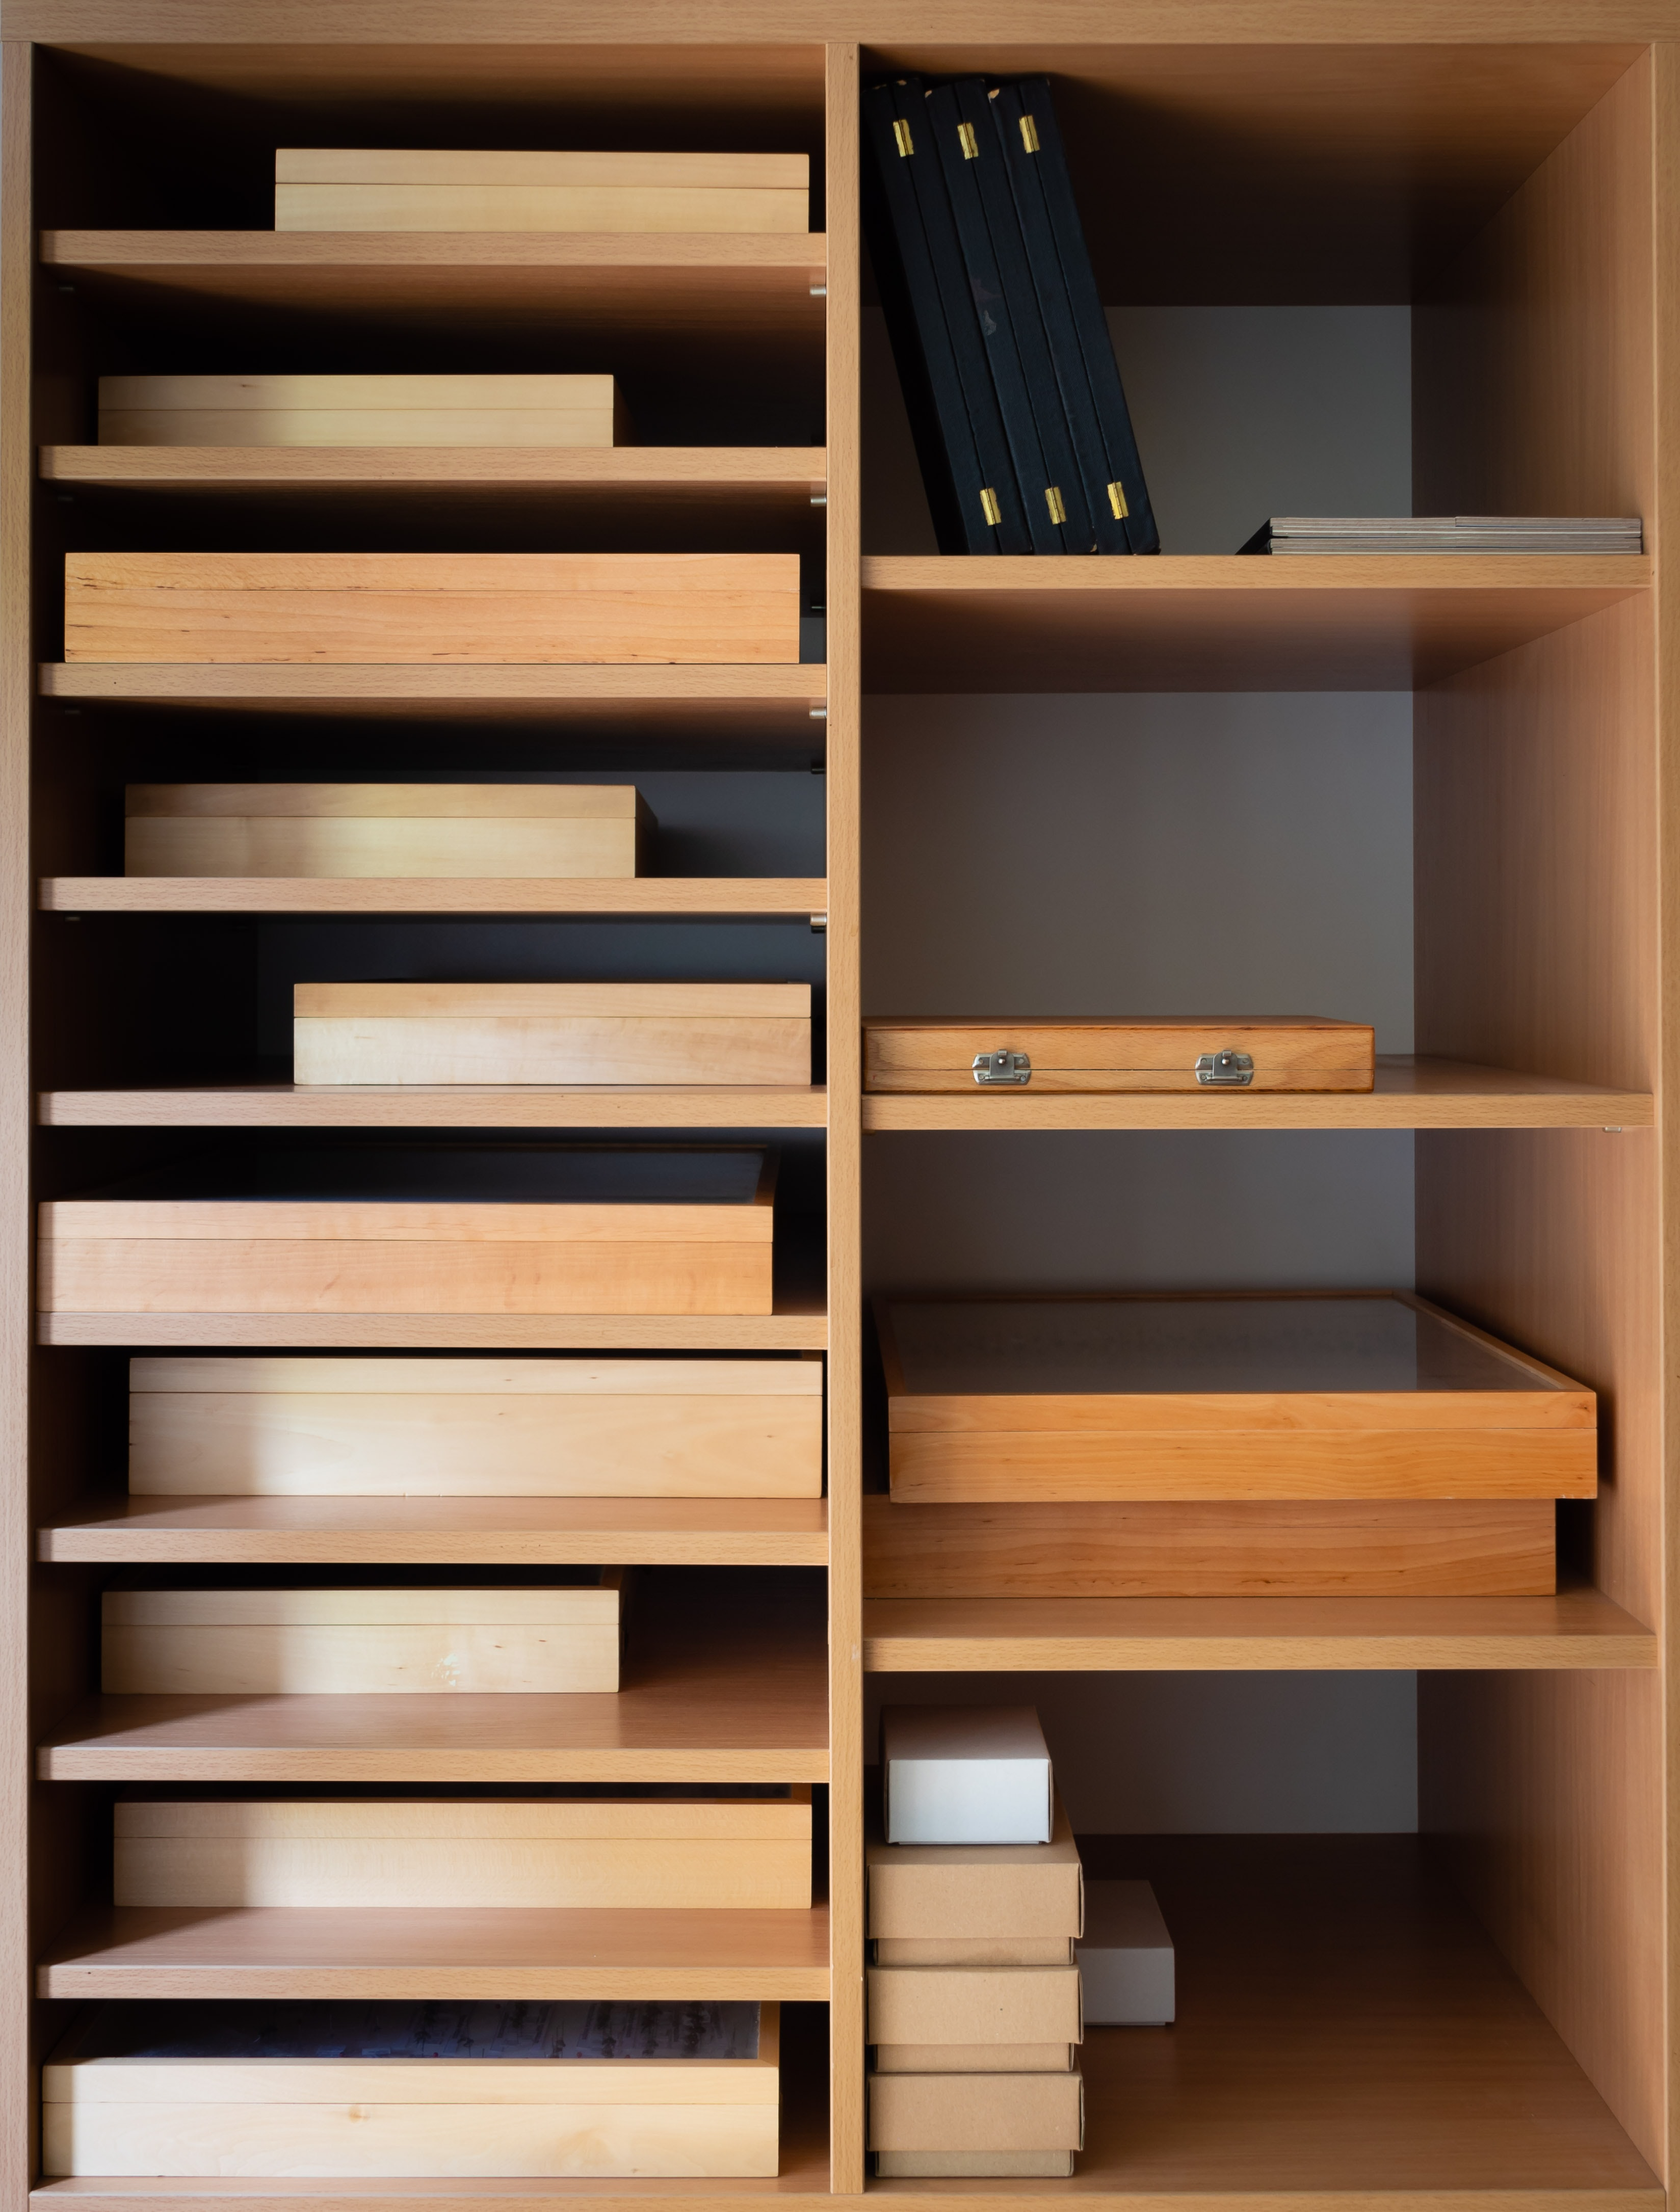 brown wooden shelves